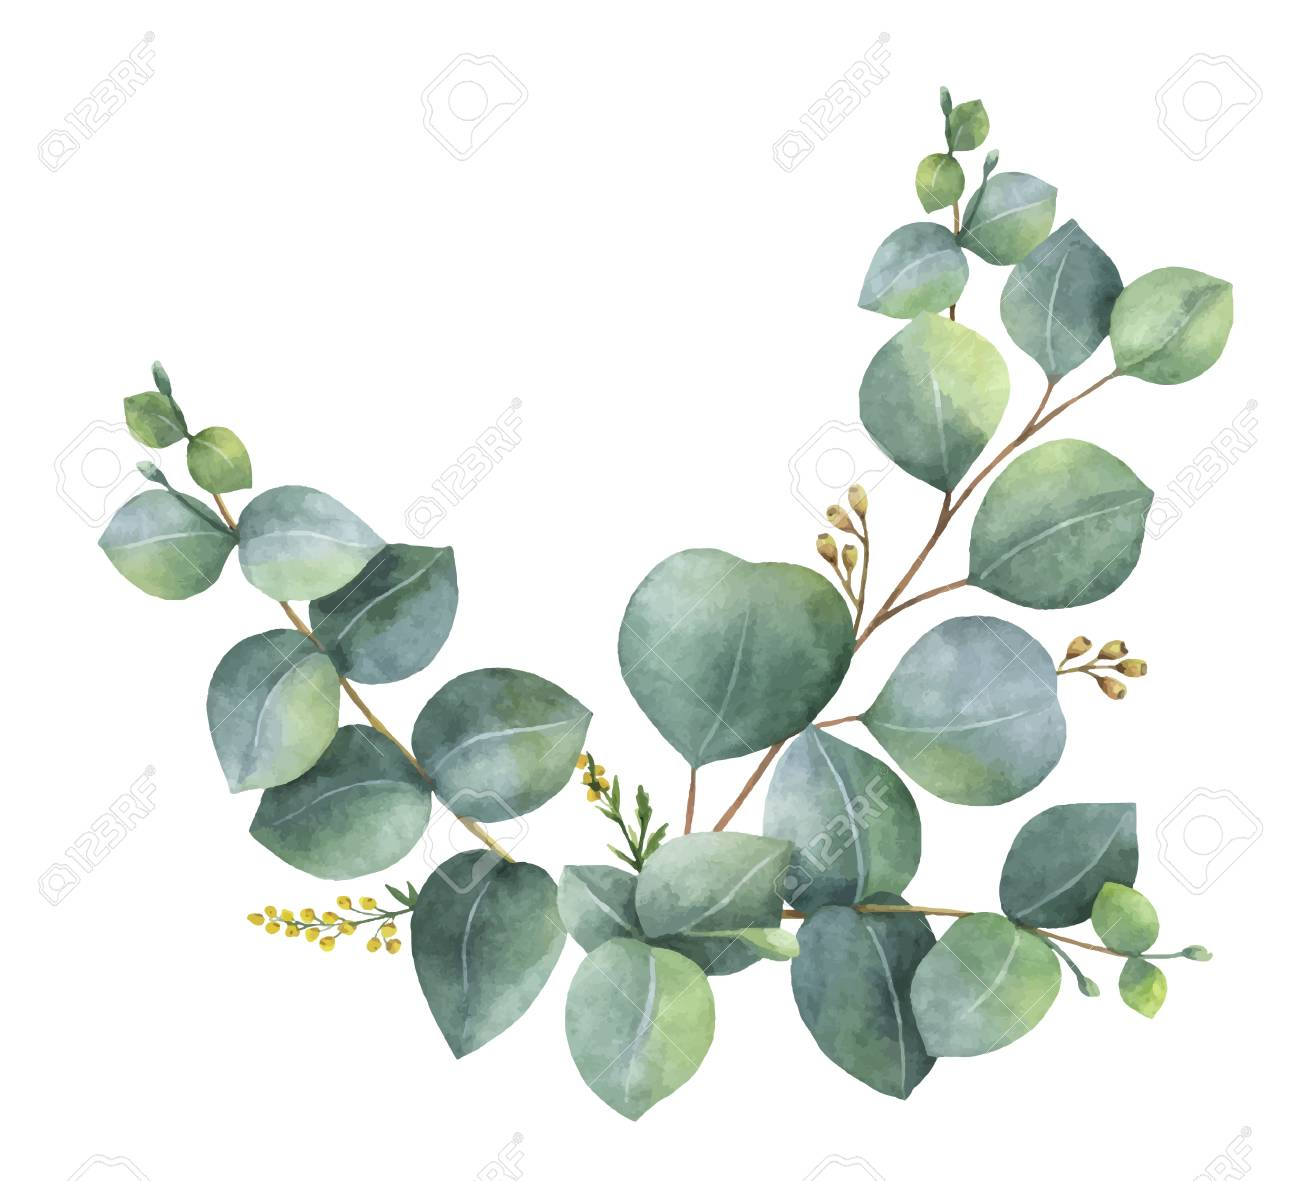 Watercolor vector wreath with green eucalyptus leaves and branches. Spring or summer flowers for invitation, wedding or greeting cards. - 90252676